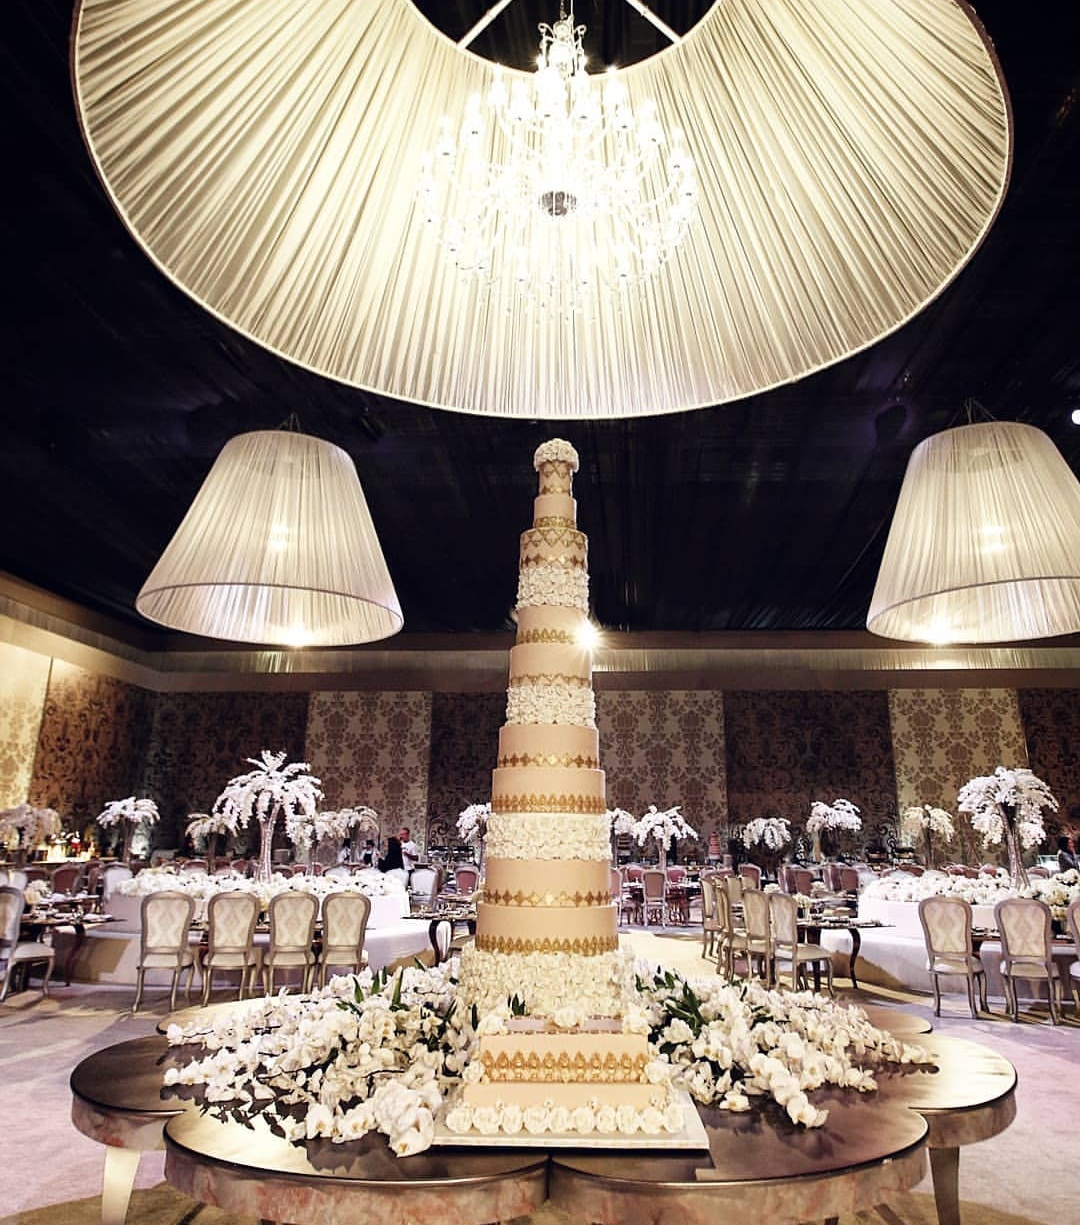 the-lebanese-wedding-scene-might-be-even-more-spectacular-than-nigerias-photos